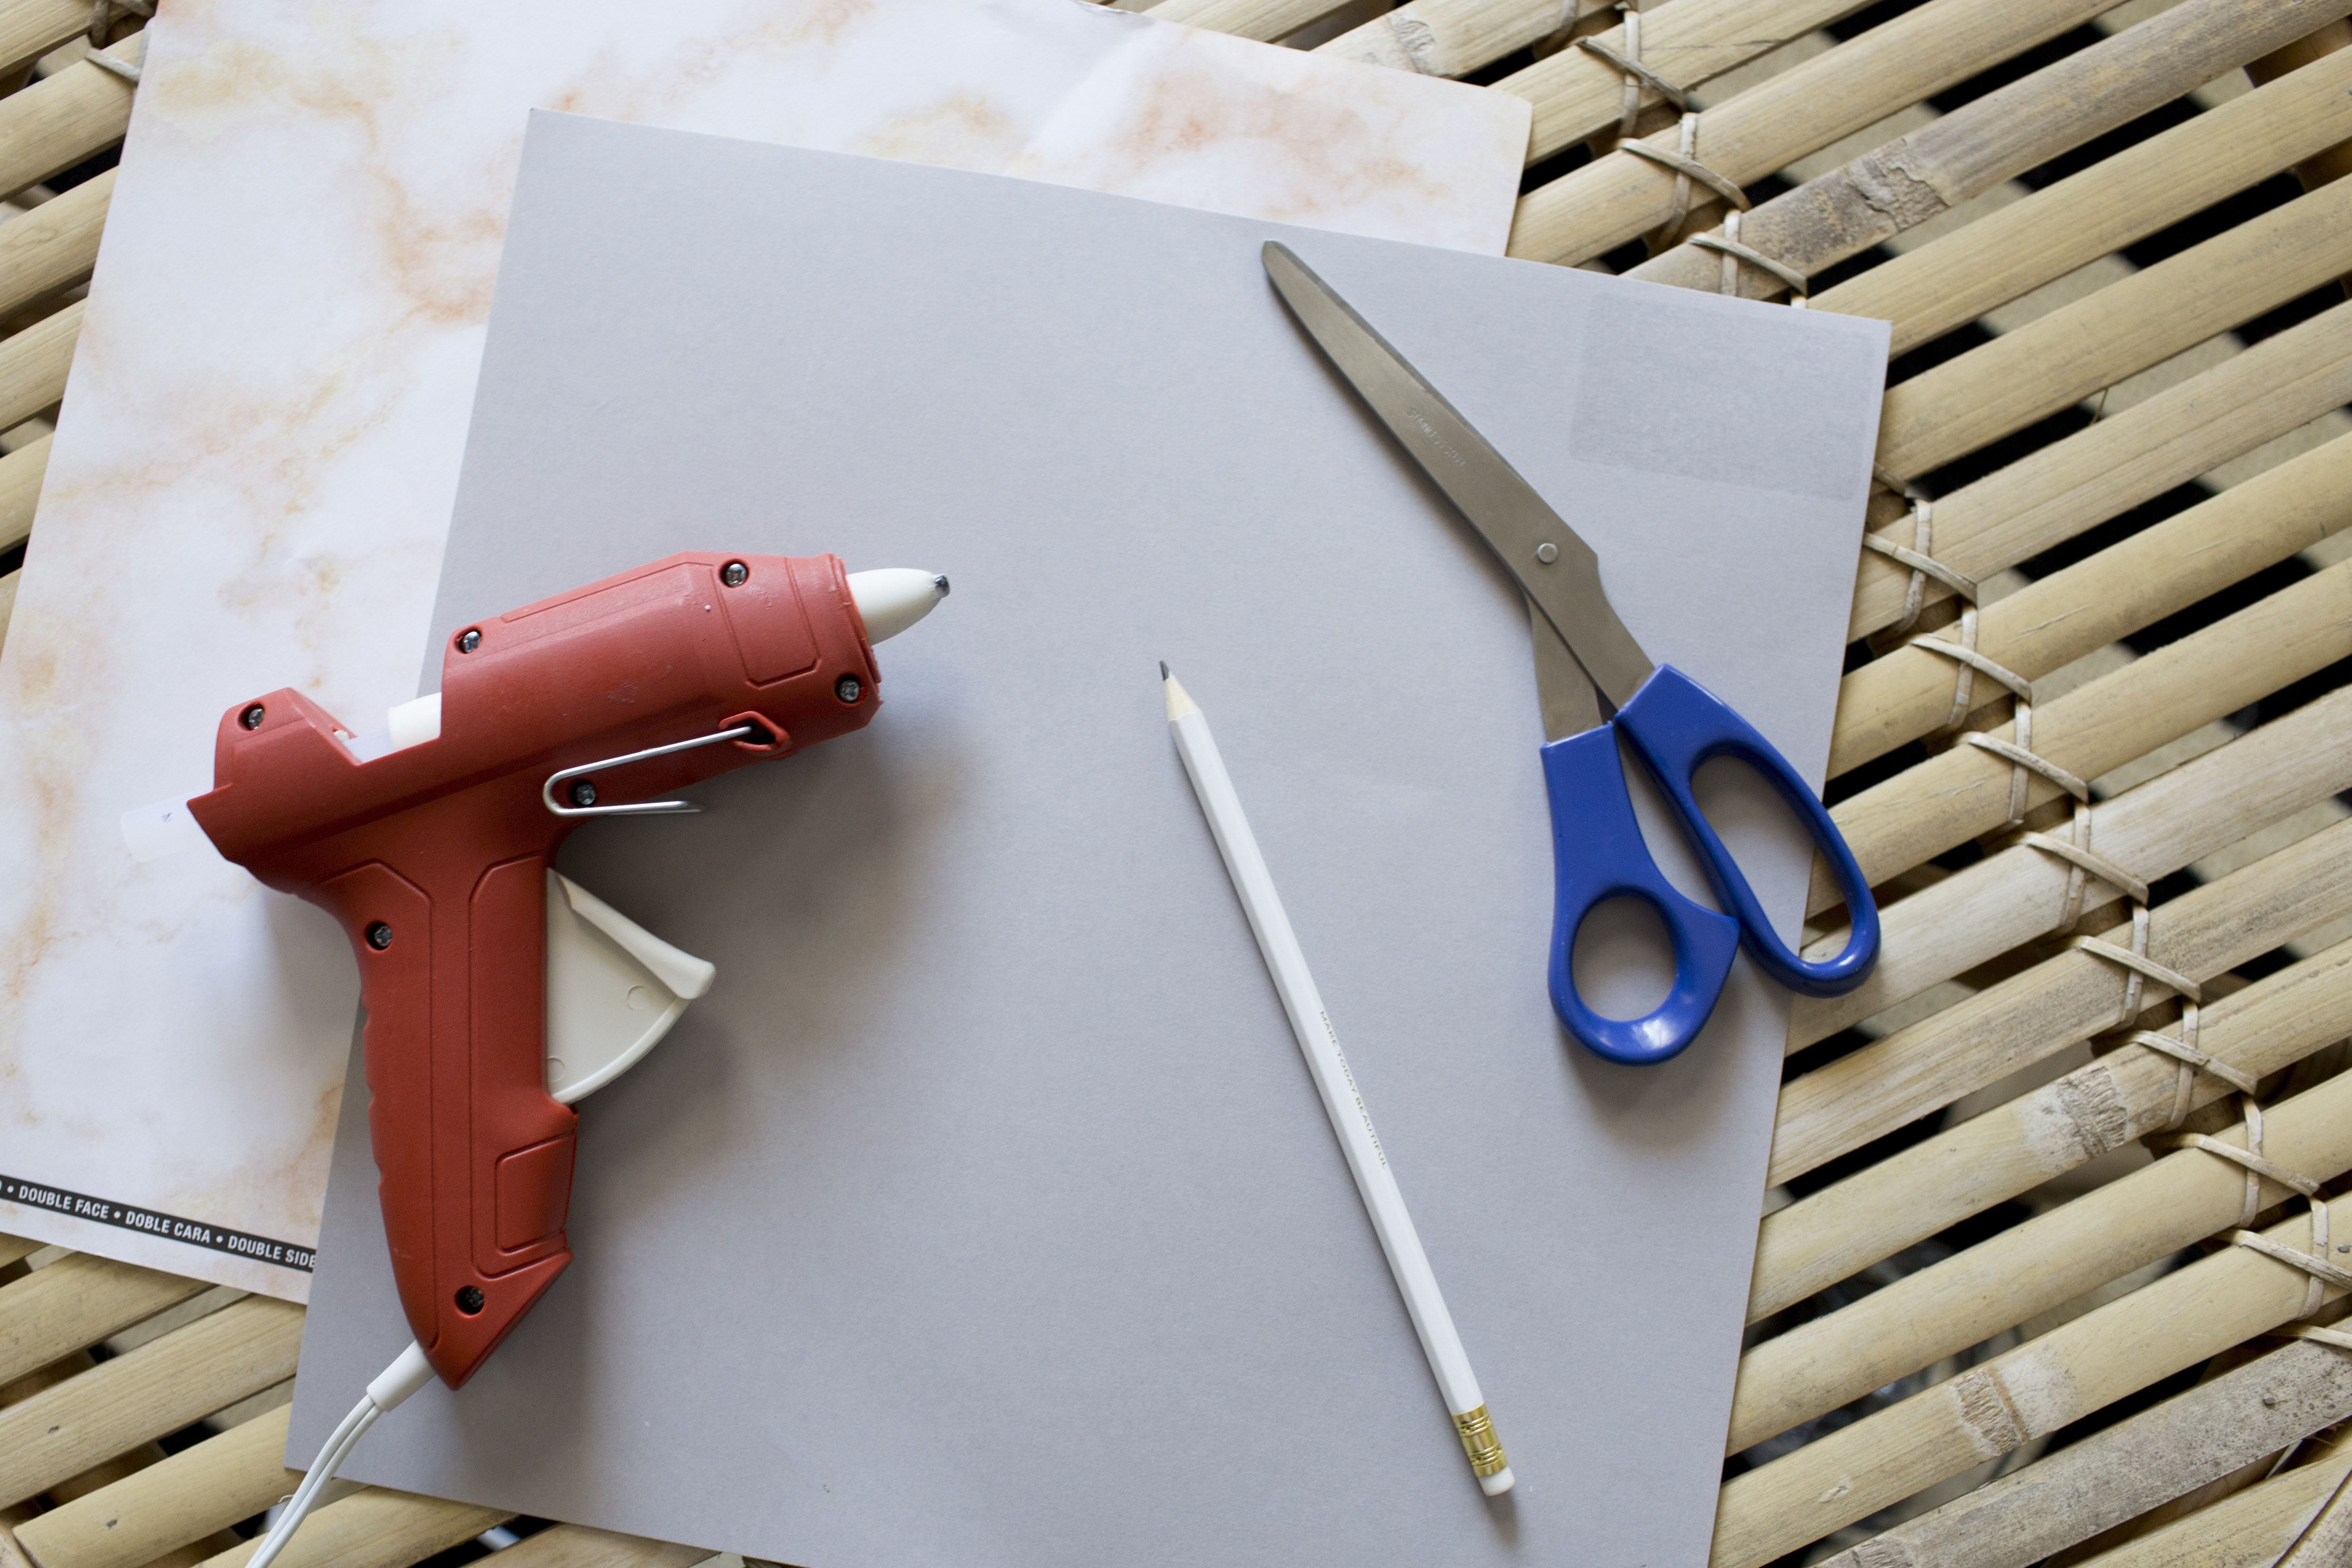 Hot glue gun, scissors, paper, and pencil all on a table.